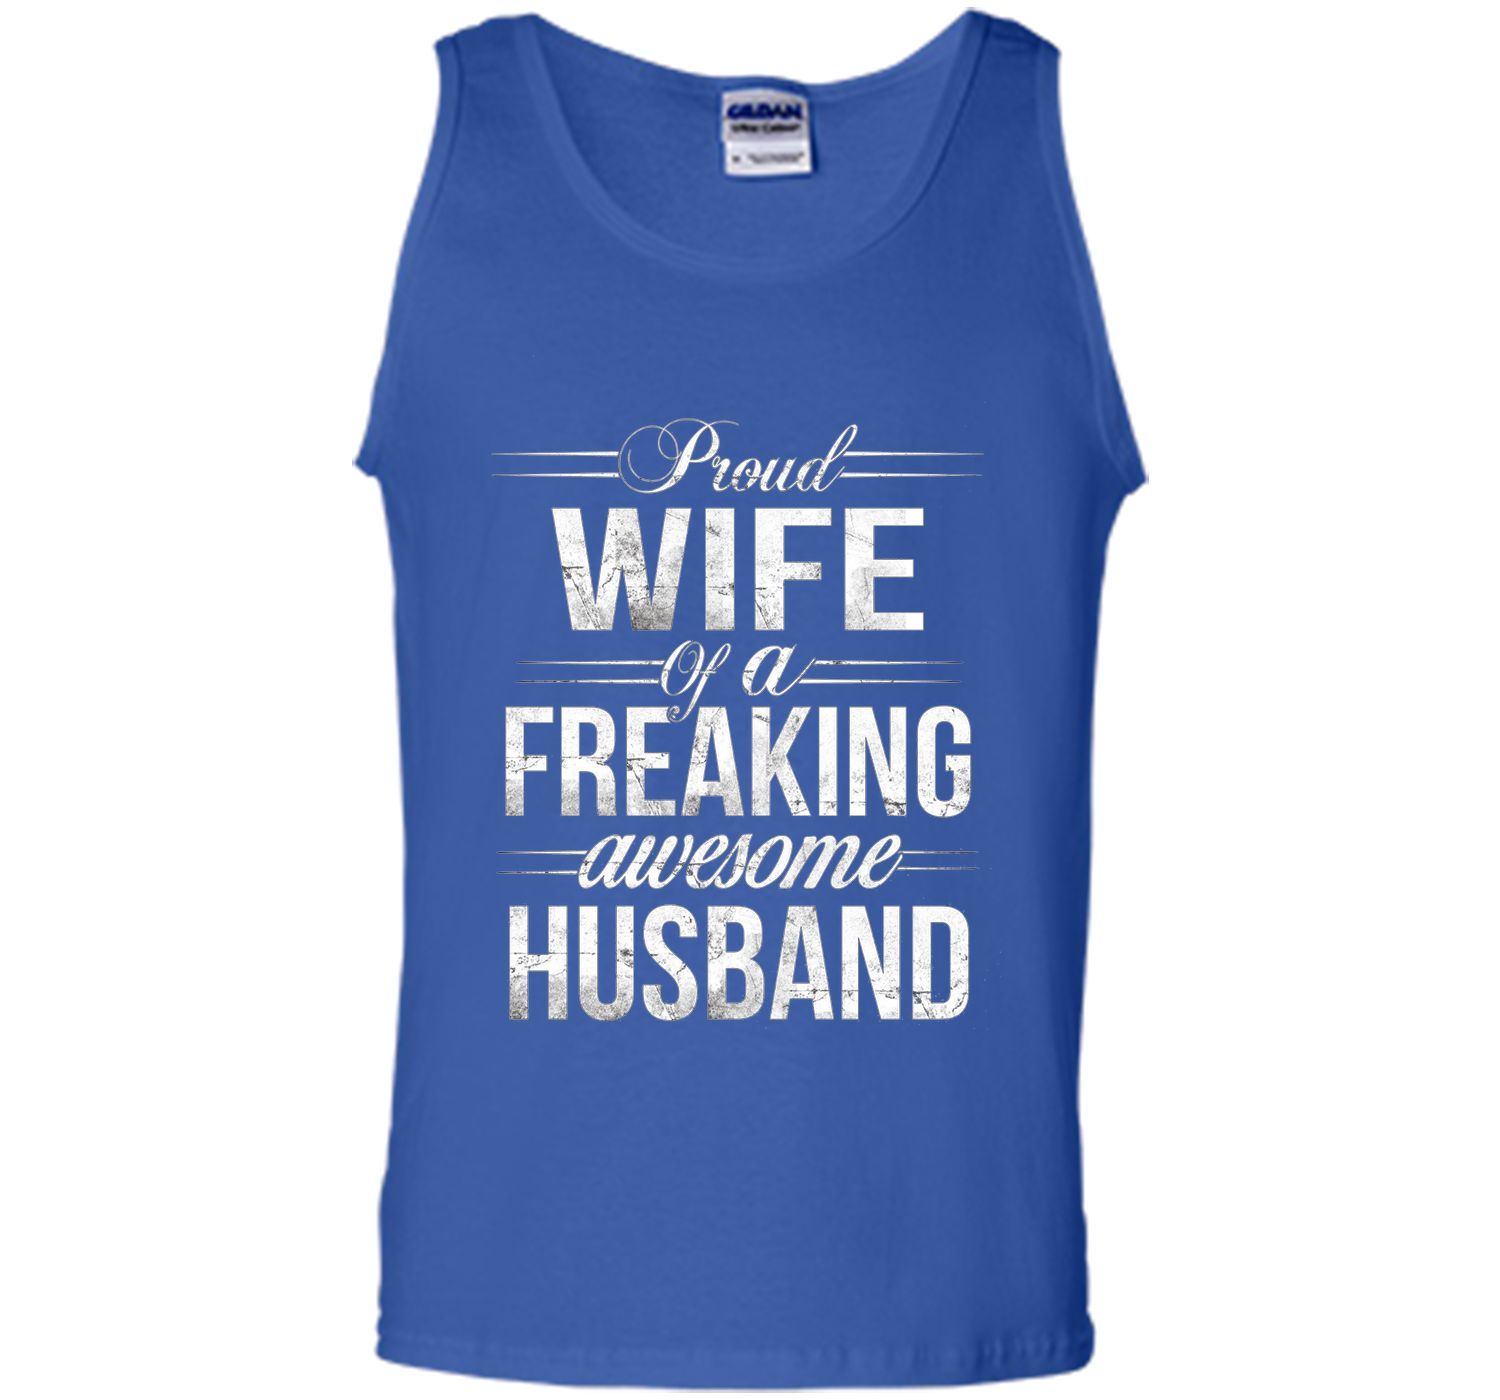 Proud Wife Of A Freaking Awesome Husband T-shirt cool shirt